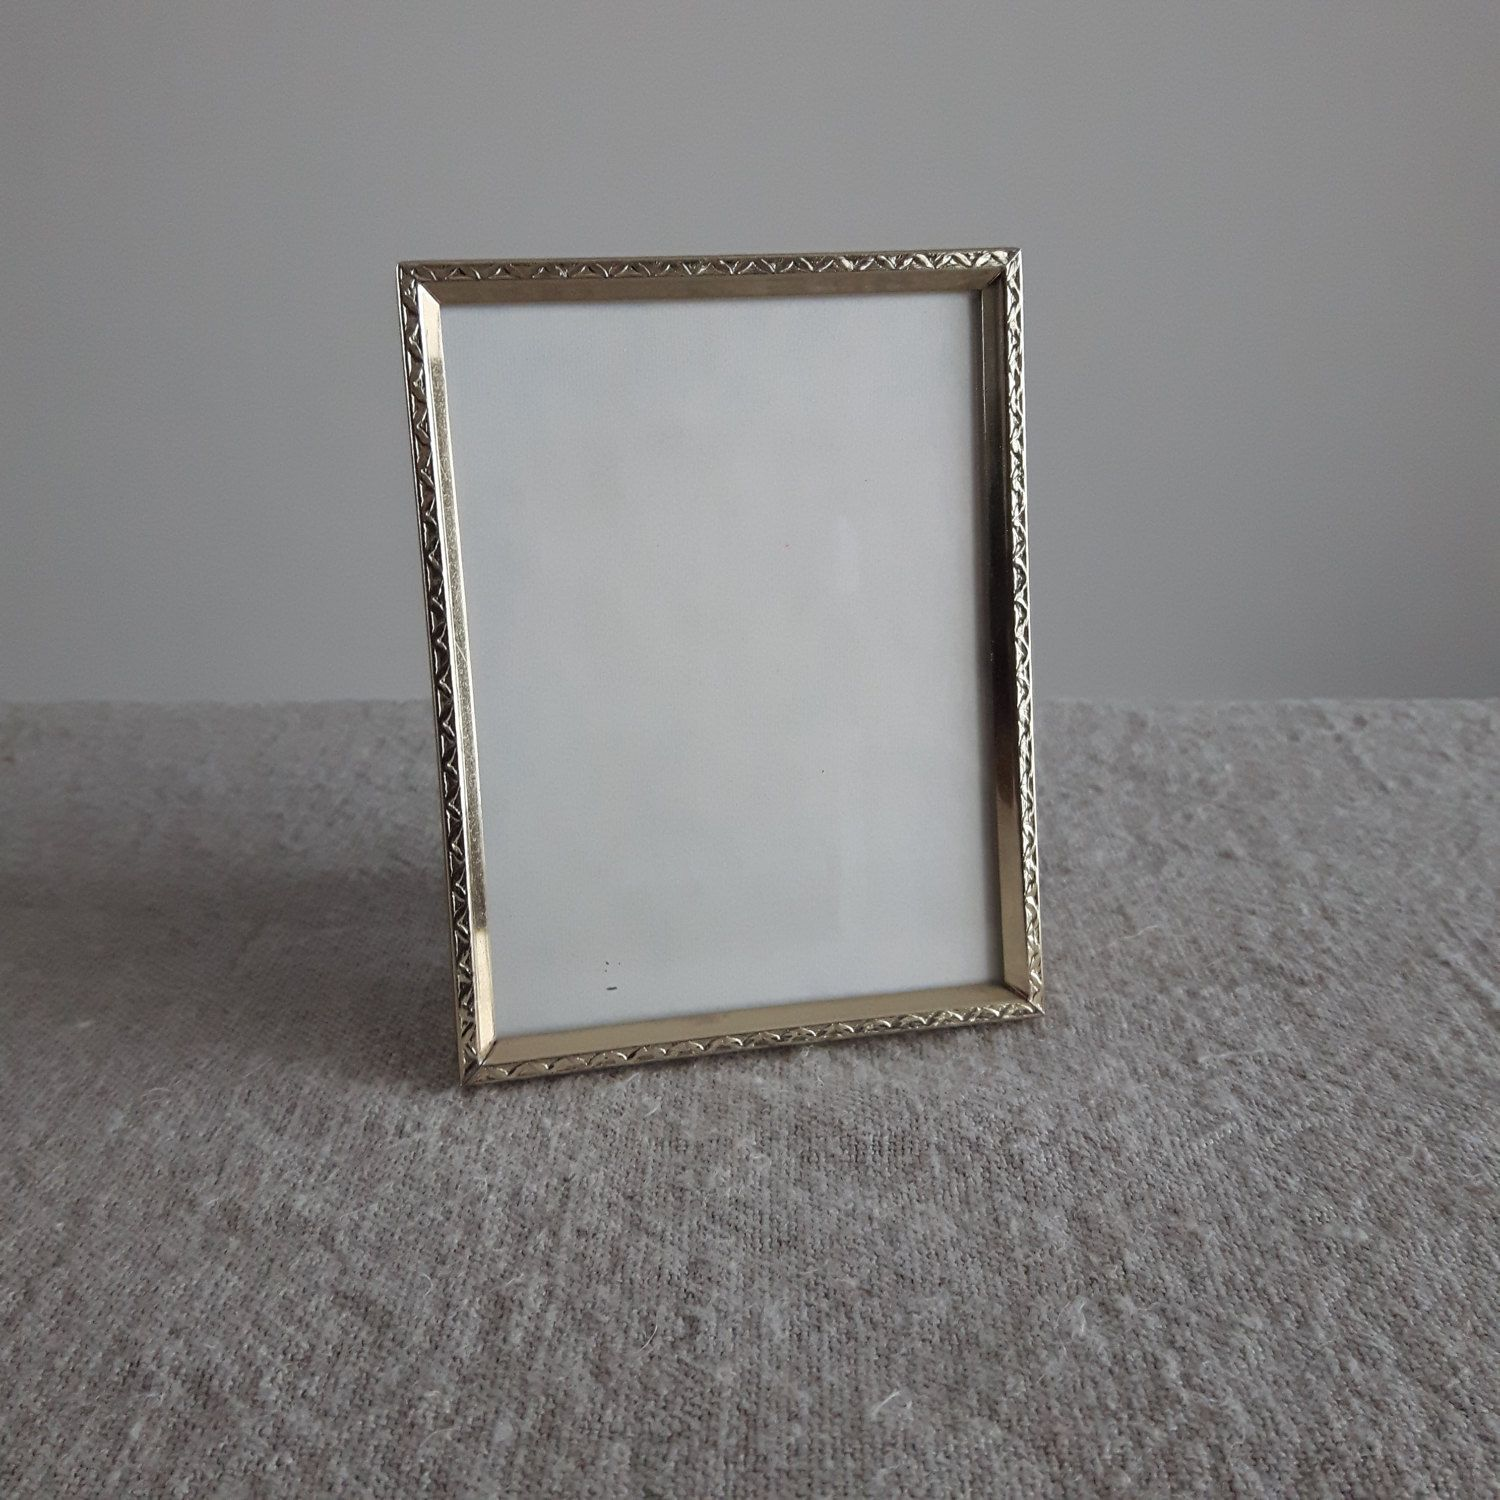 3 14 x 4 14 brass gold tone metal picture frame mid x brass gold tone metal picture frame mid century cm x cm heirloom family photos rectangular small frame by bluechickenvintage on etsy jeuxipadfo Images